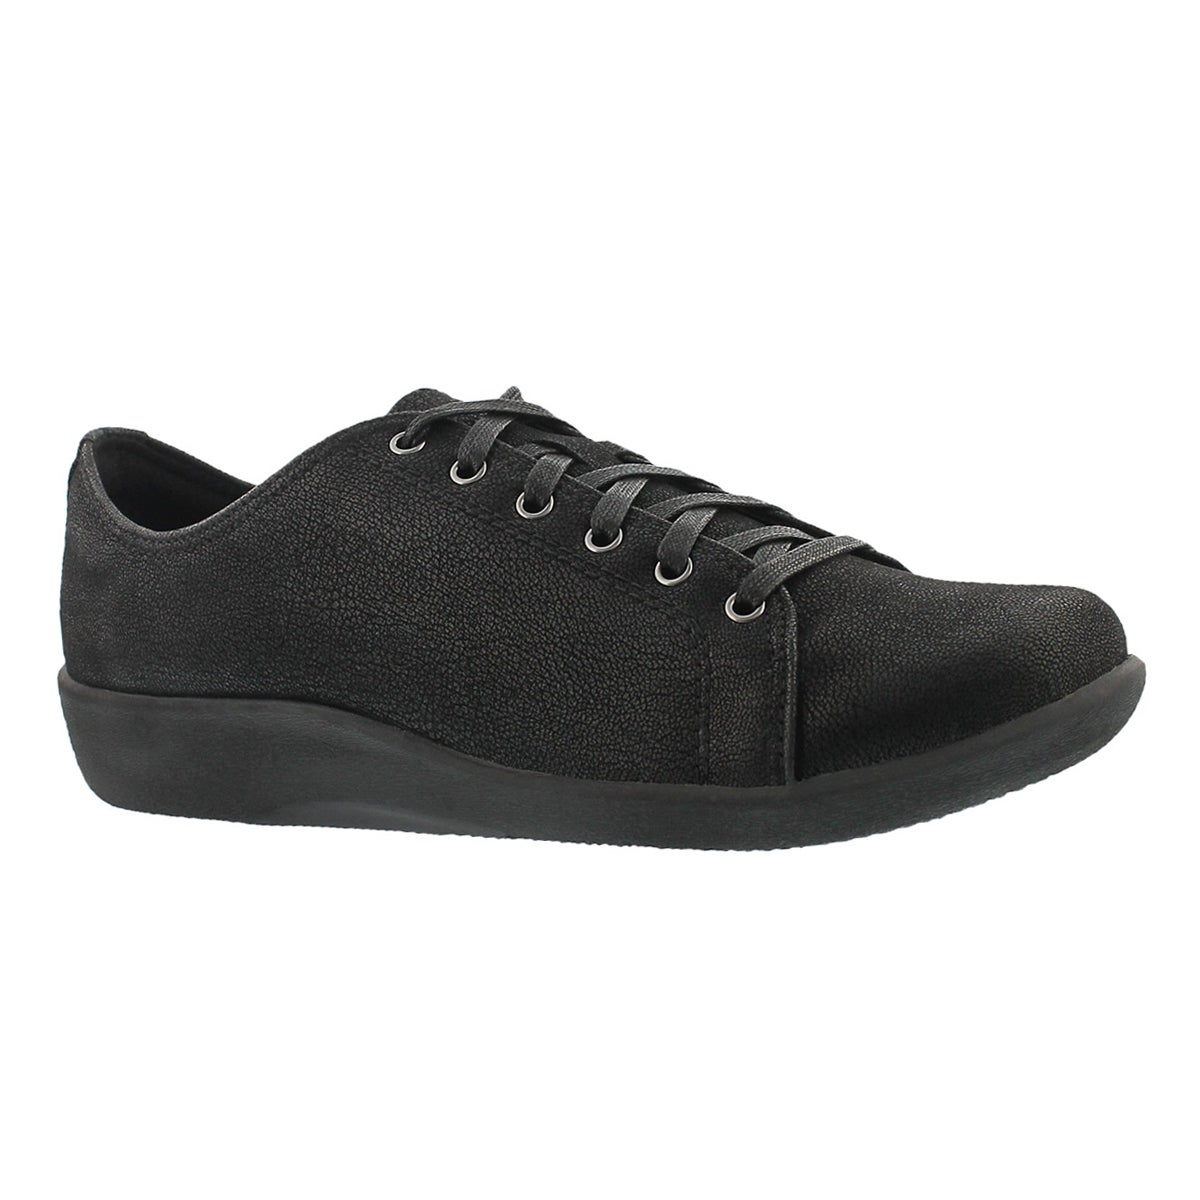 Women's SILLIAN GLORY black lace up casual shoes